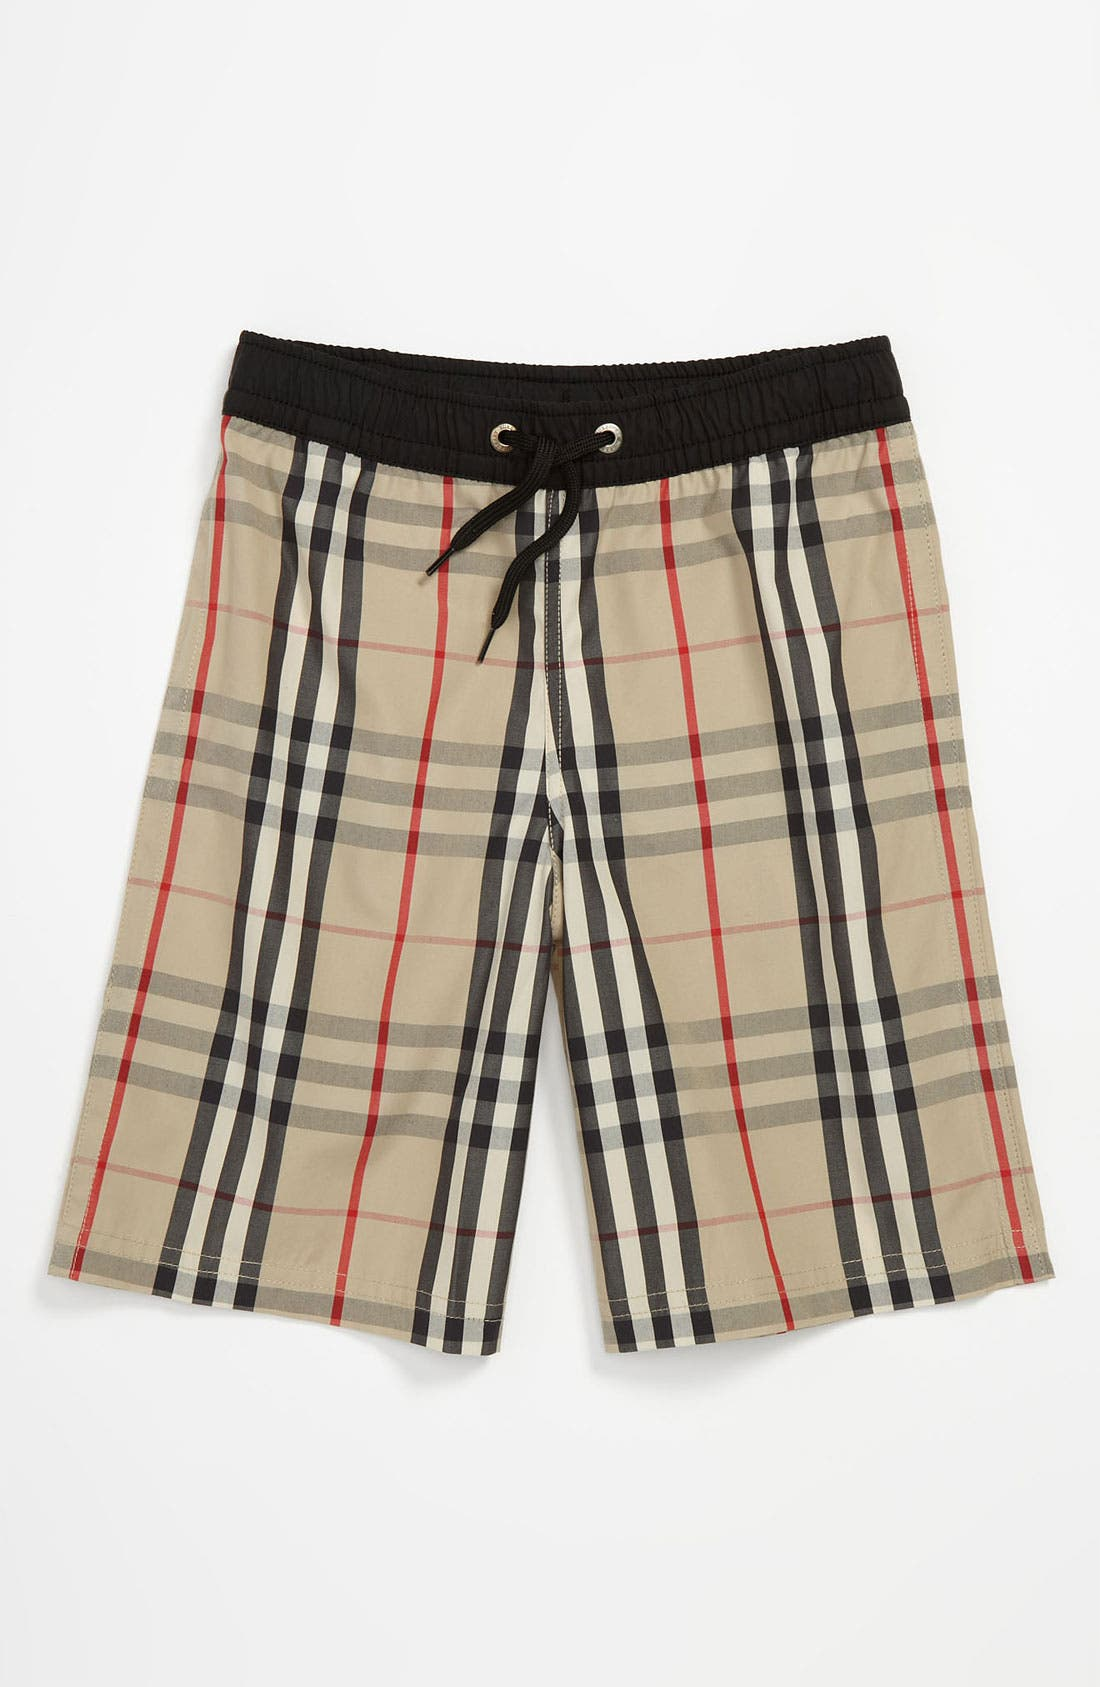 Alternate Image 1 Selected - Burberry 'Atilony' Swim Shorts (Big Boys)